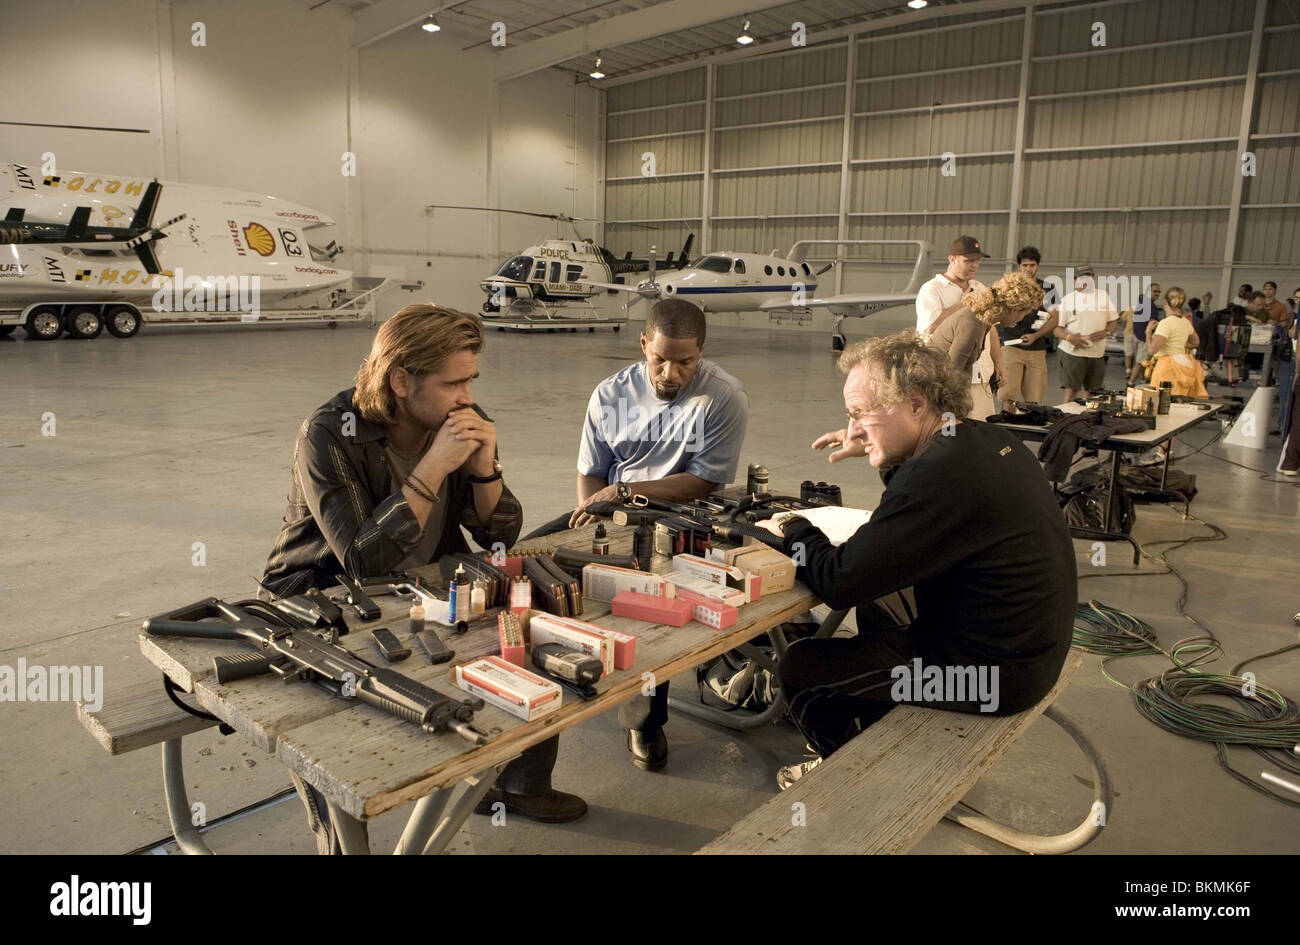 ON SET (ALT) FILMING (ALT) BEHIND THE SCENES (ALT) O/S 'MIAMI VICE' (2006) WITH COLIN FARRELL, JAMIE FOXX, - Stock Image